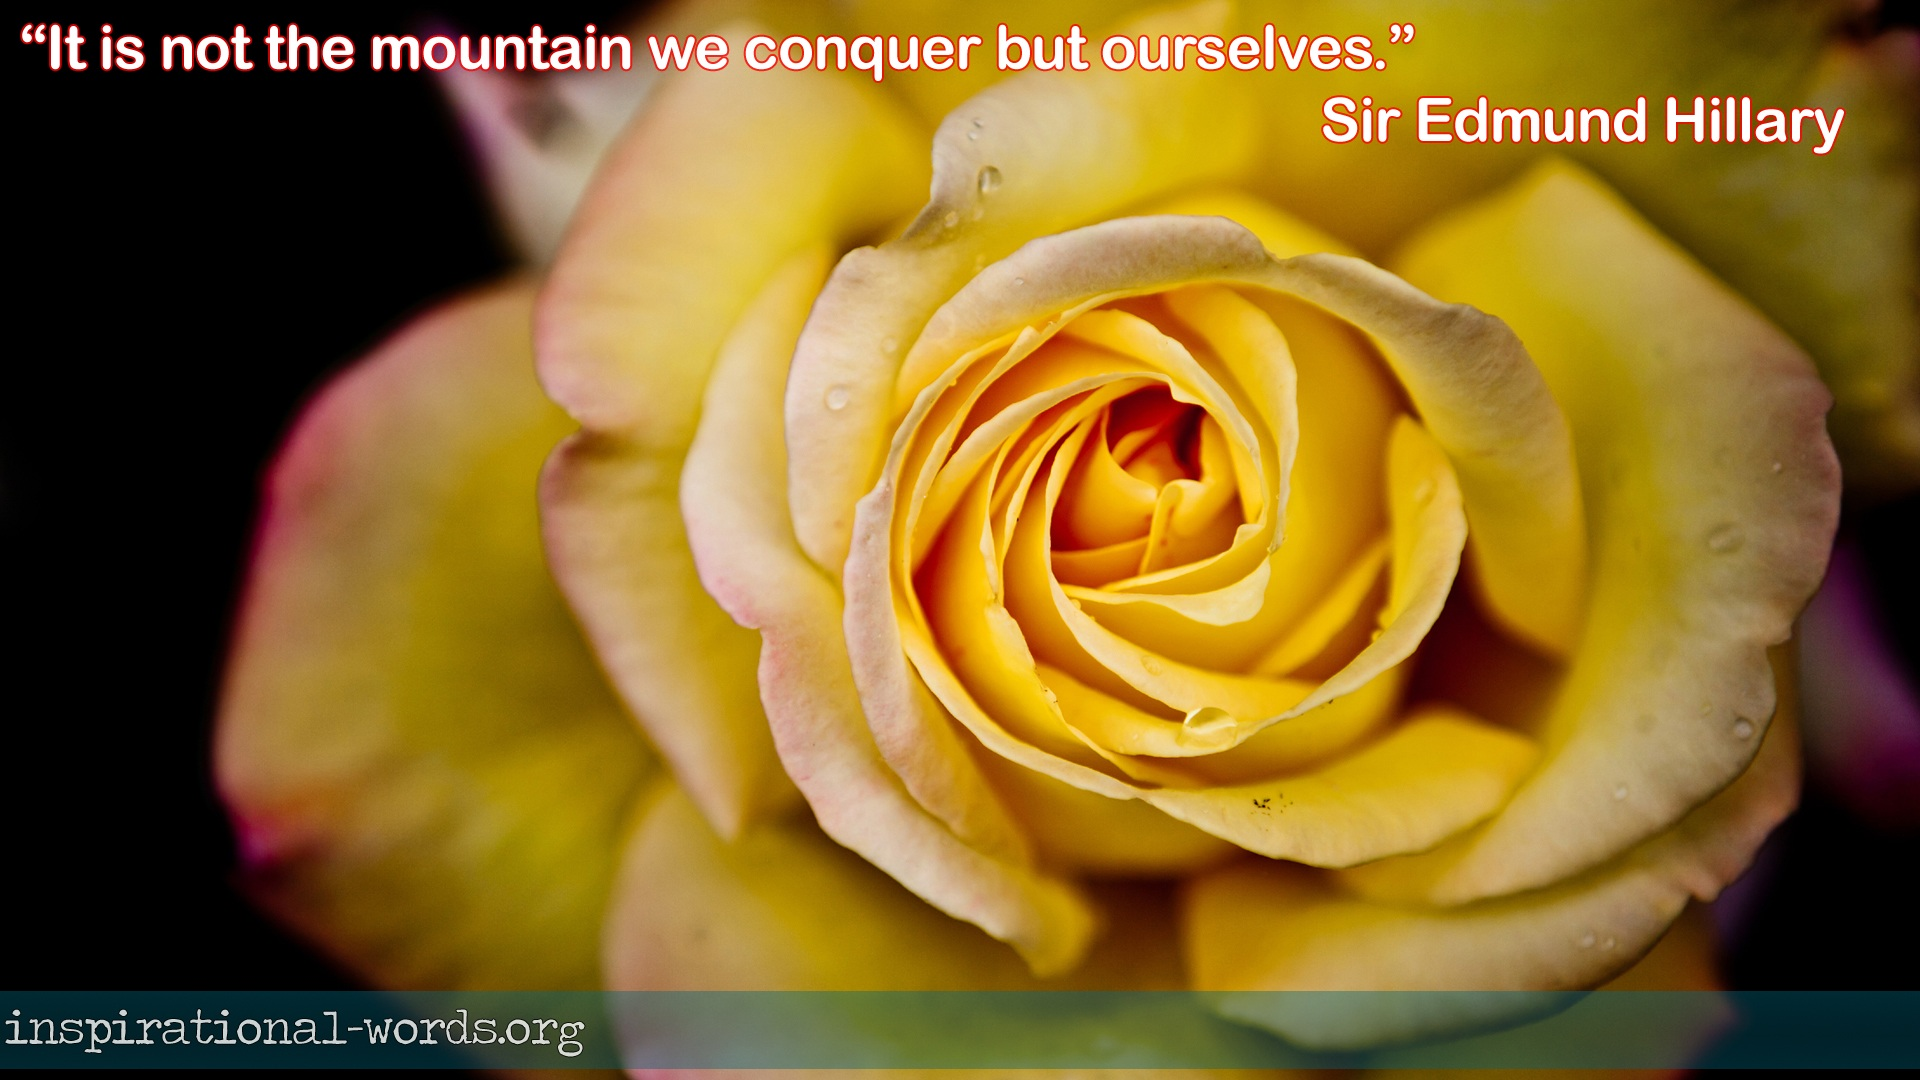 Sir Edmund Hillary inspirational words